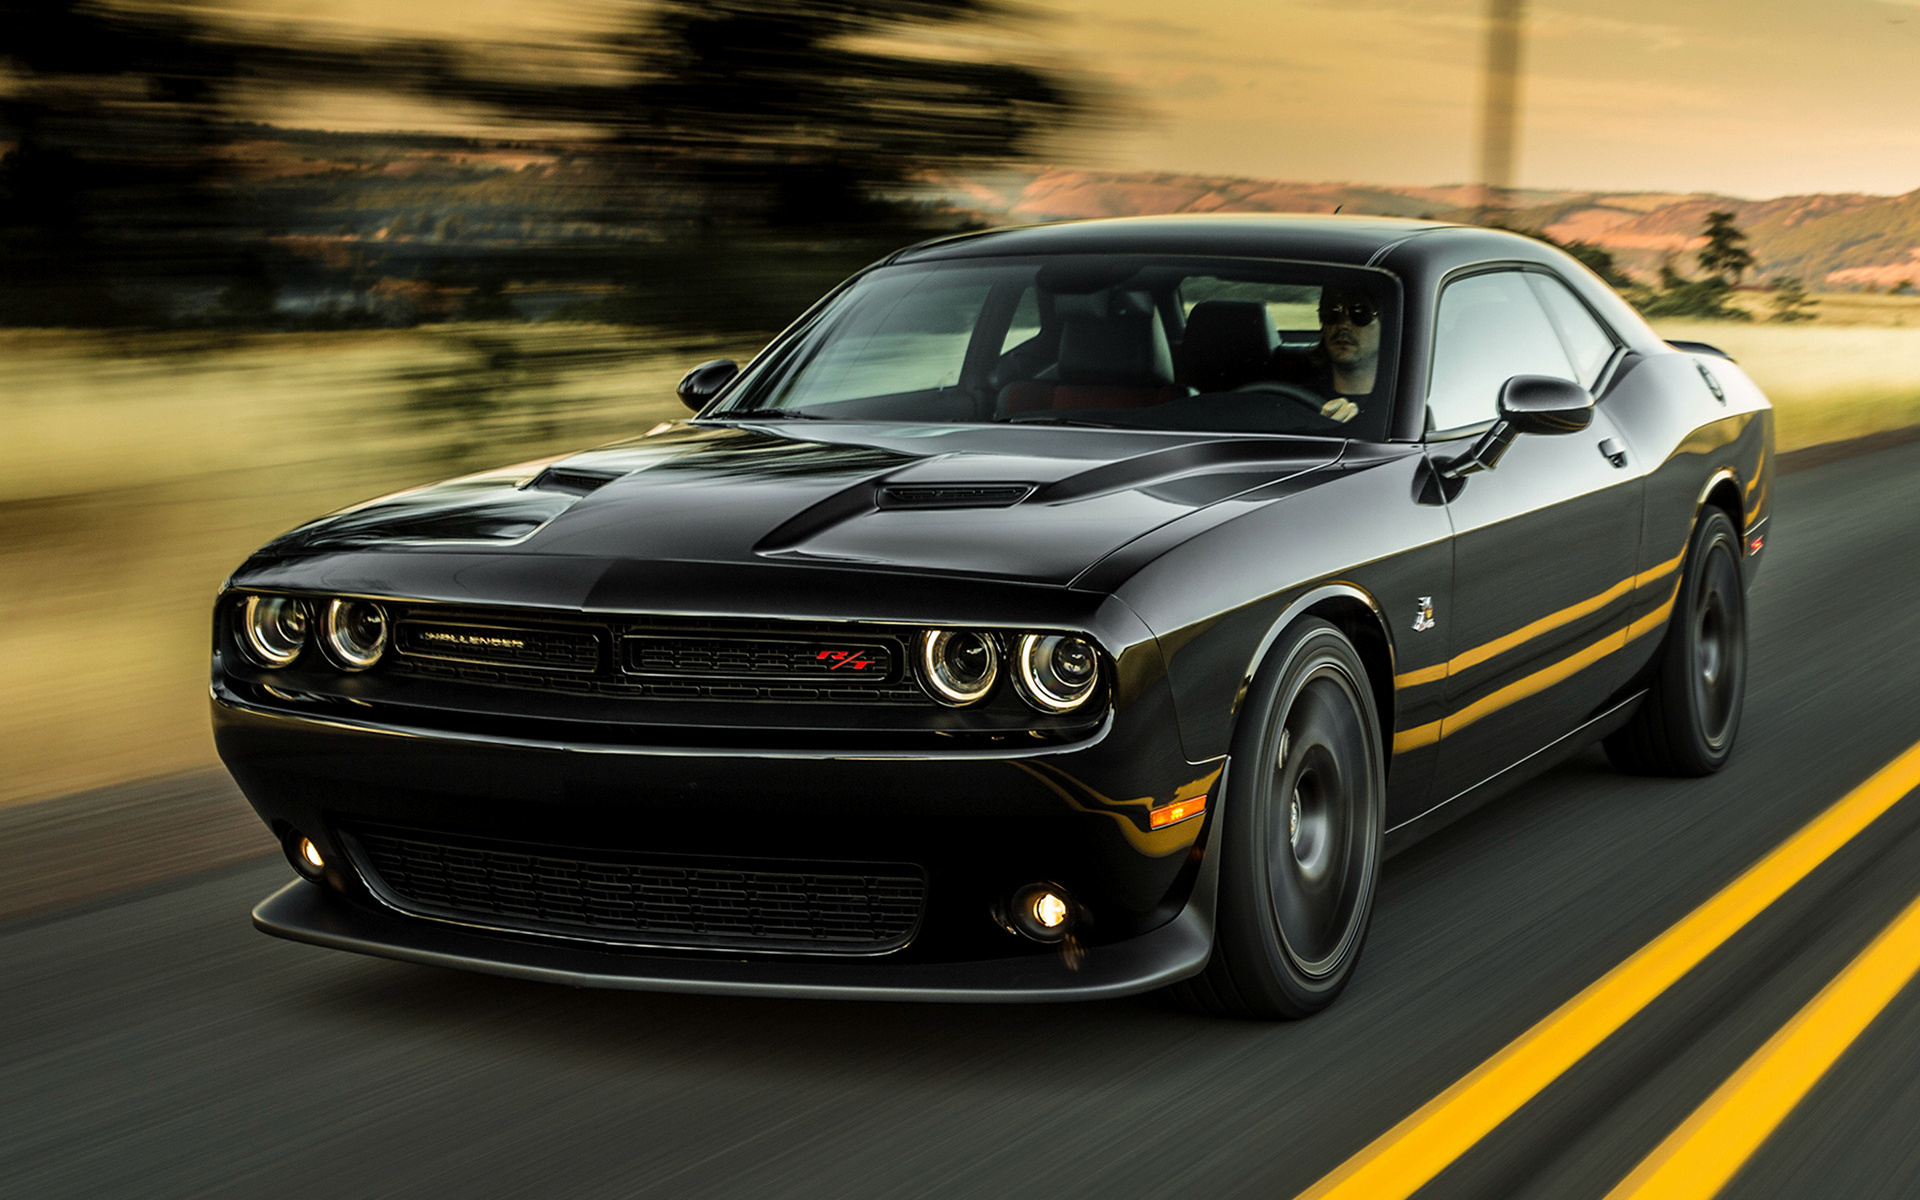 Toyota Of Natchez >> Dodge Challenger R/T Scat Pack (2015) Wallpapers and HD ...